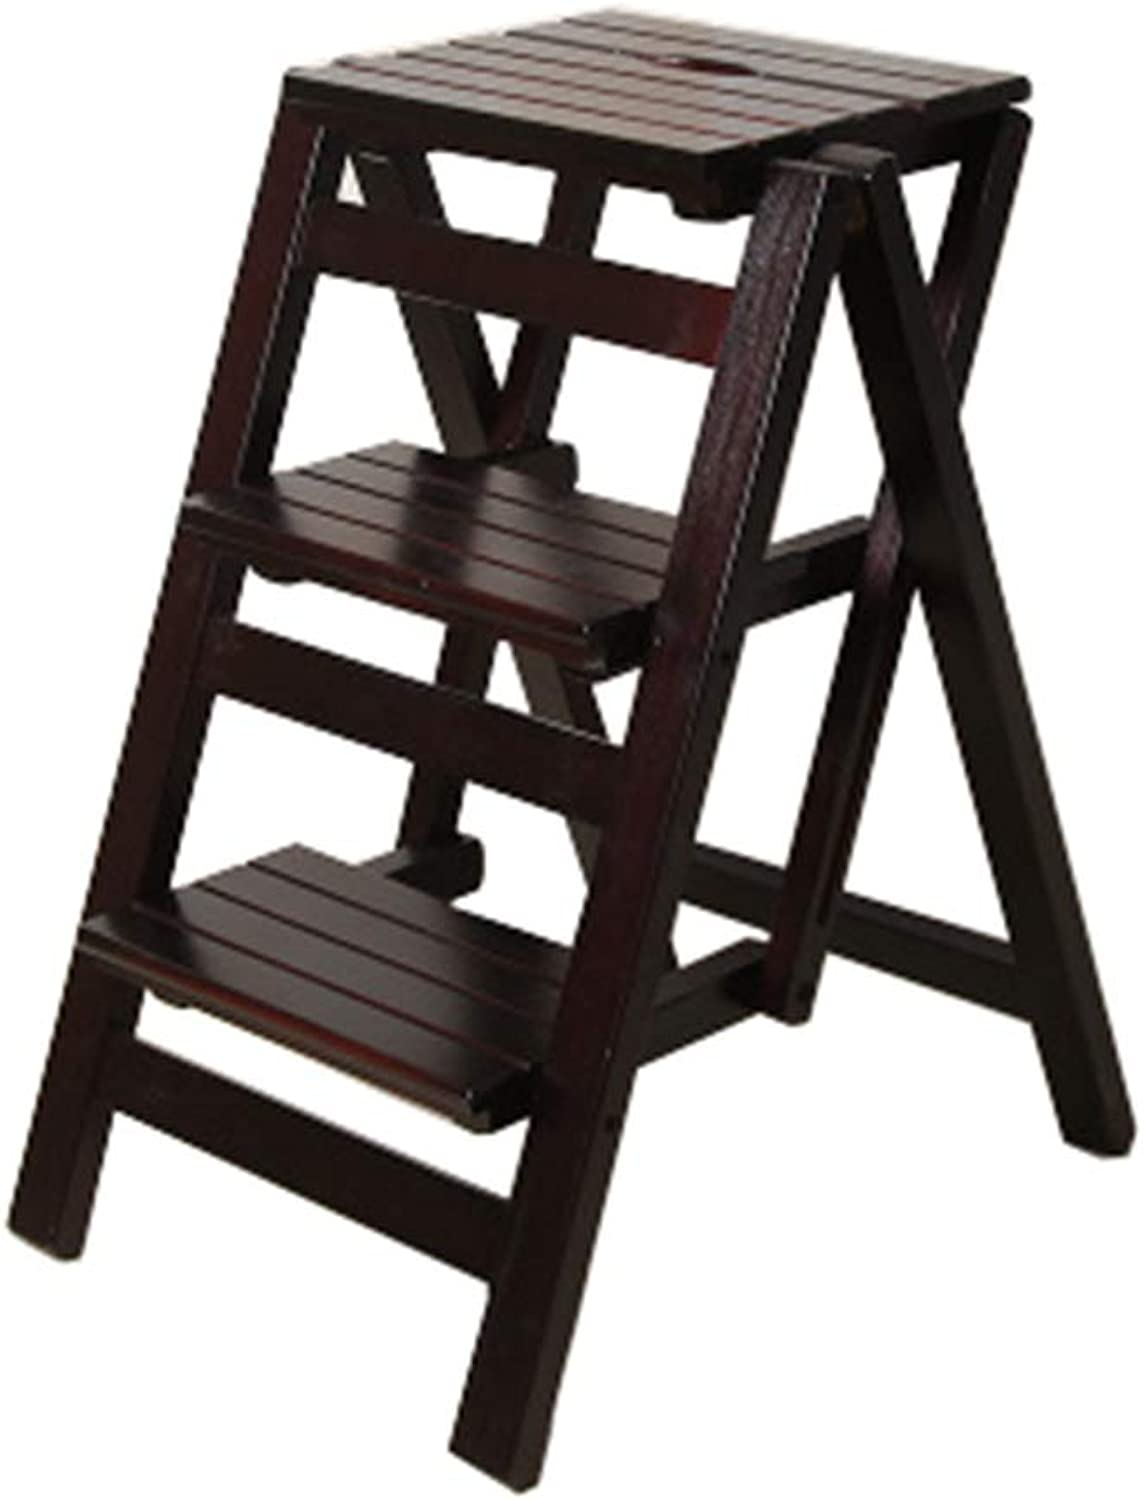 Folding Step Stool Stair Chair Seats Wooden Ladder Shelf Stepladder Dual-use Climb 3-layer pedal Multifunction Portable Flower Rack Kitchen Indoor Home